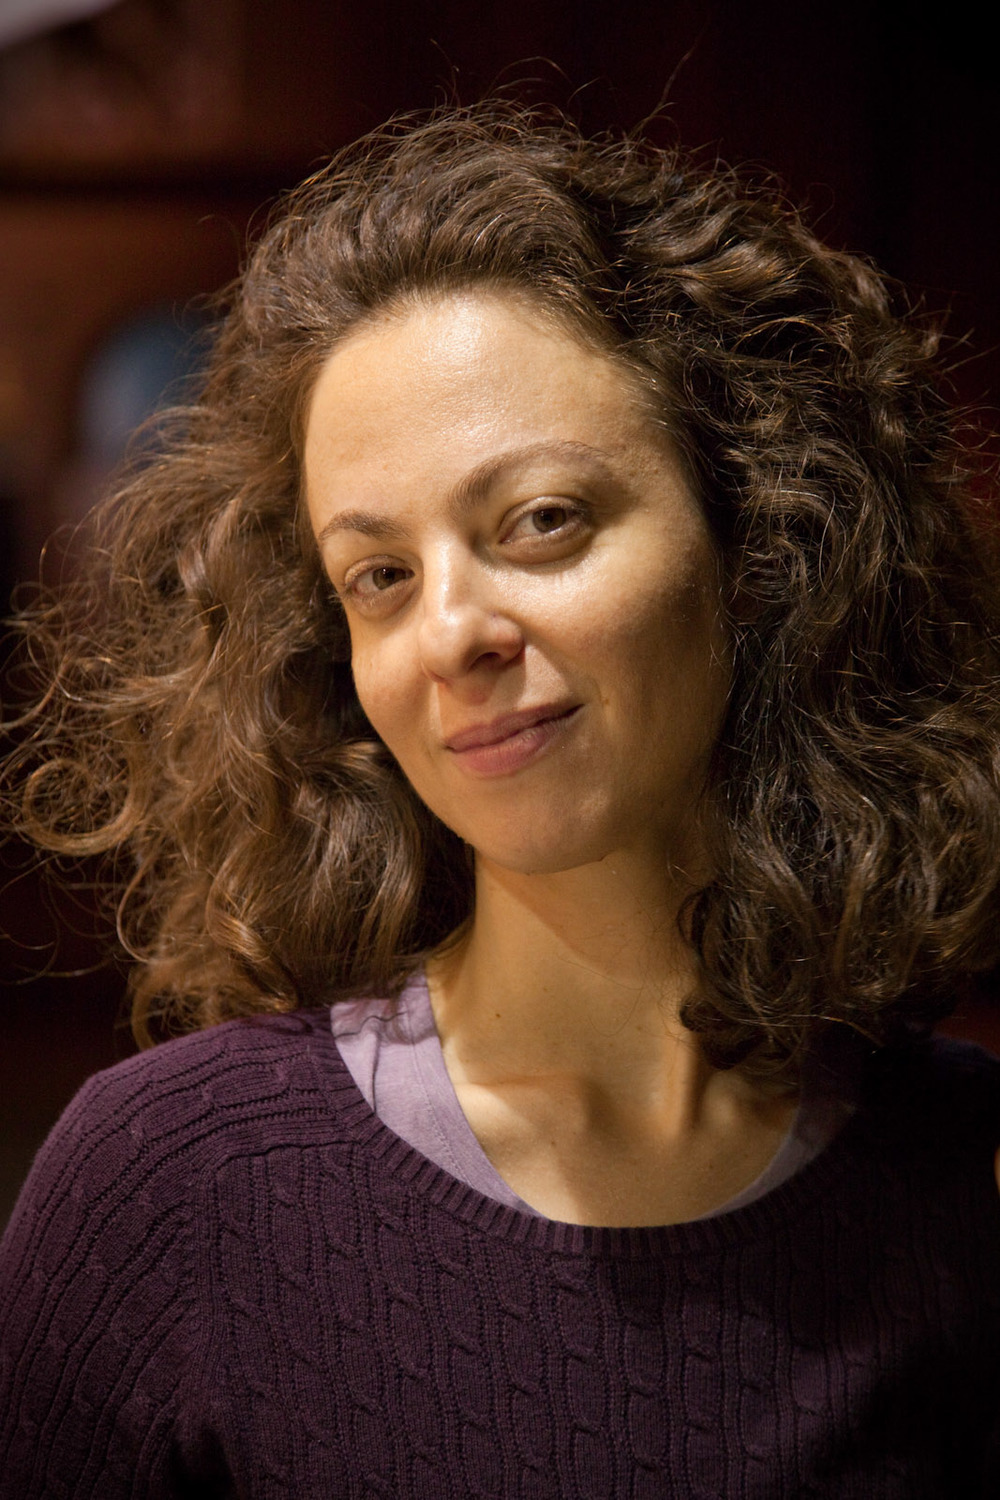 Nadia Foskolou, theater director